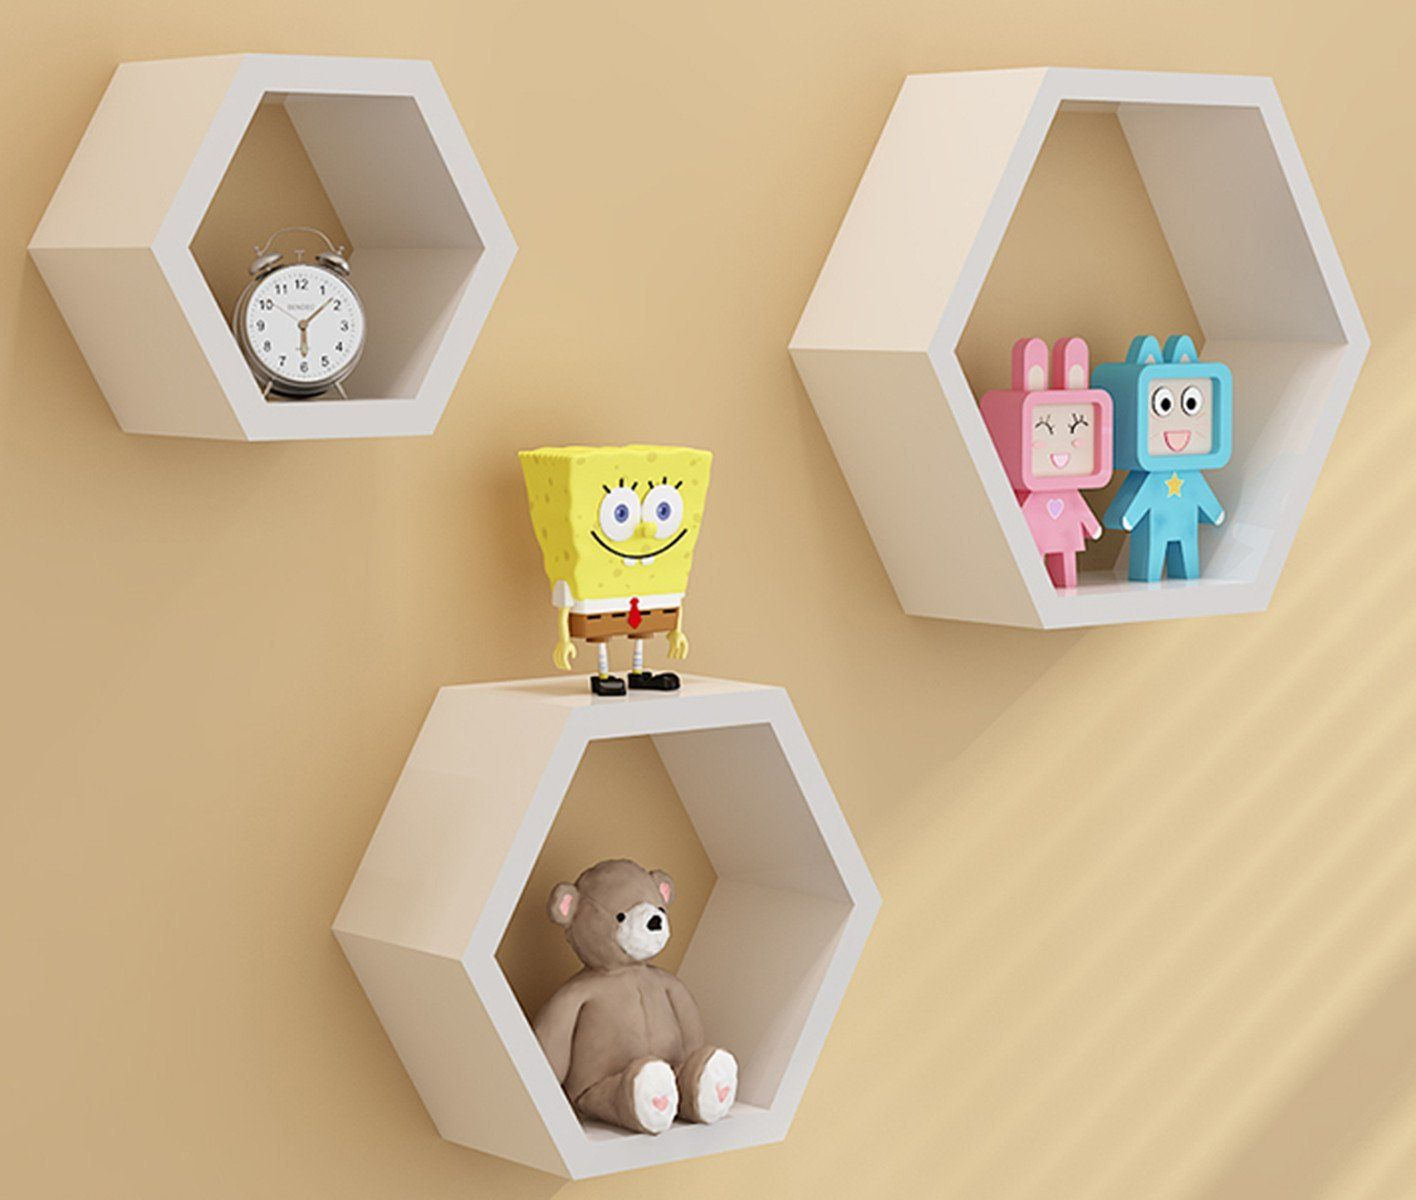 Amazon.com - Zjchao Home DIY Decorative Wall Floating Honeycomb ...